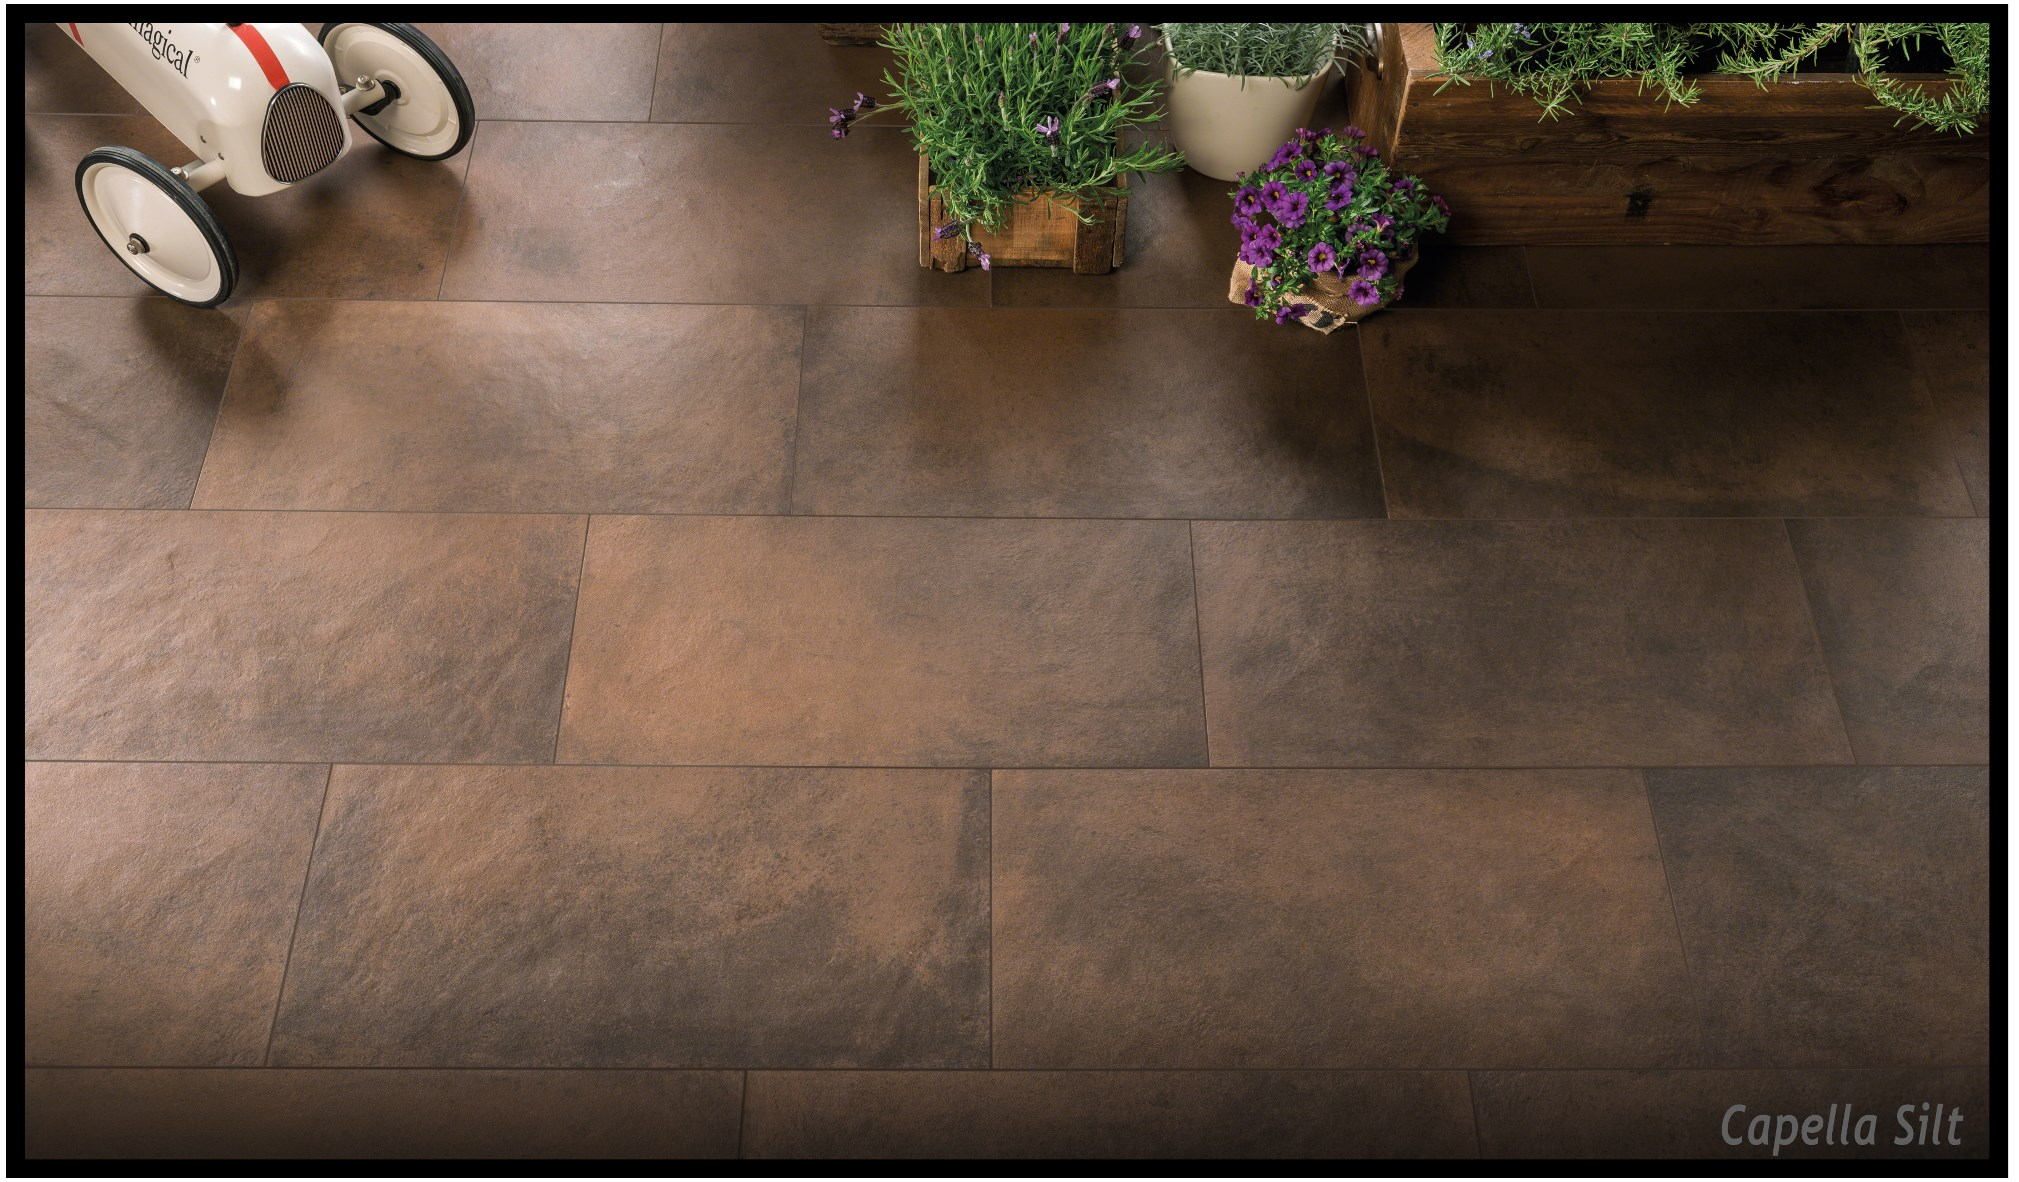 Improving upon perfection capella porcelain tiles builders and homeowners are choosing porcelain tile options for flooring backsplashes countertops and other applications for good reason its extremely dailygadgetfo Image collections